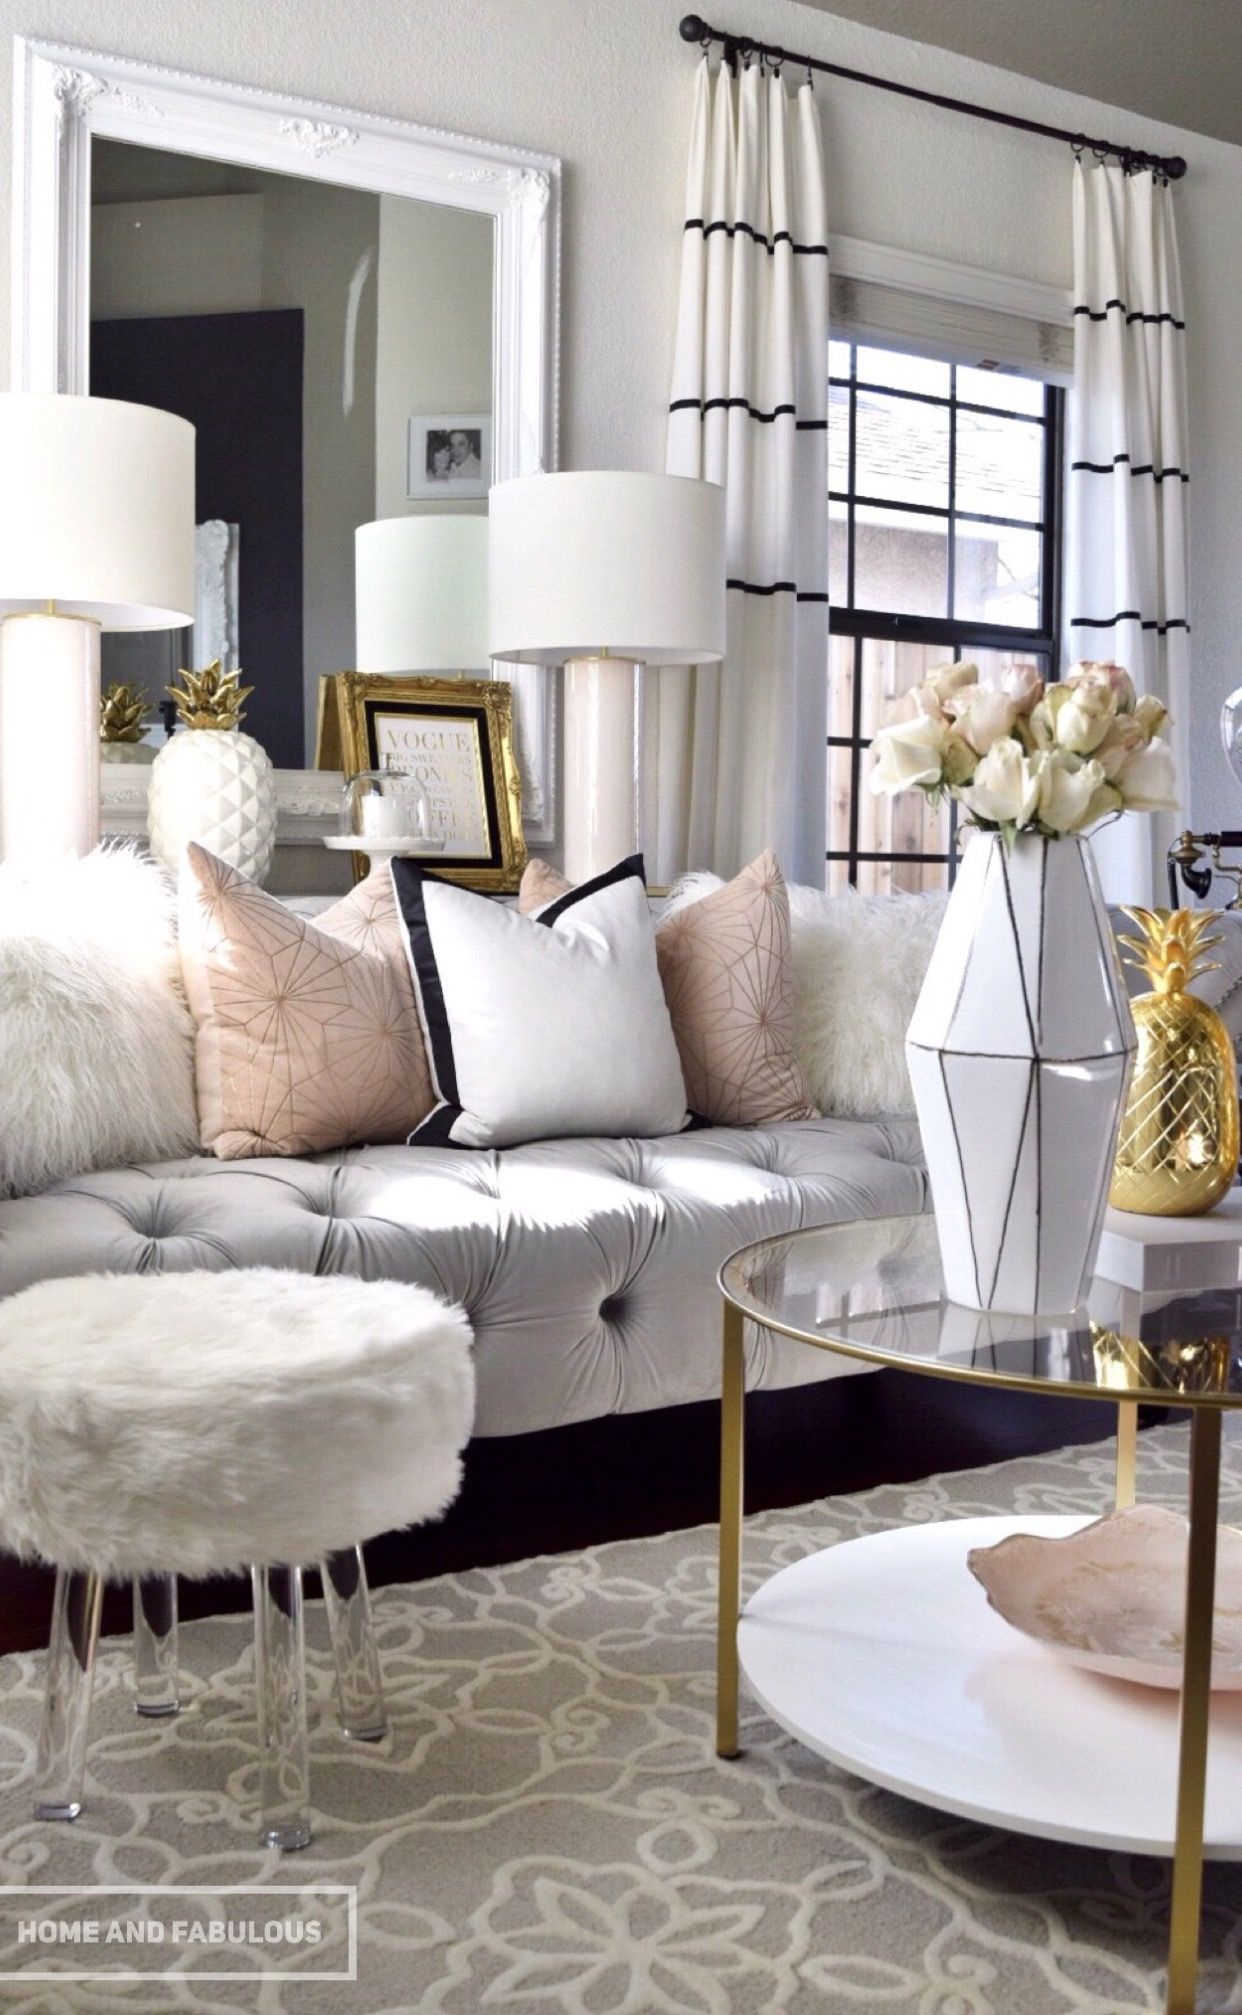 How One Couch Inspired a Living Room Transformation ...